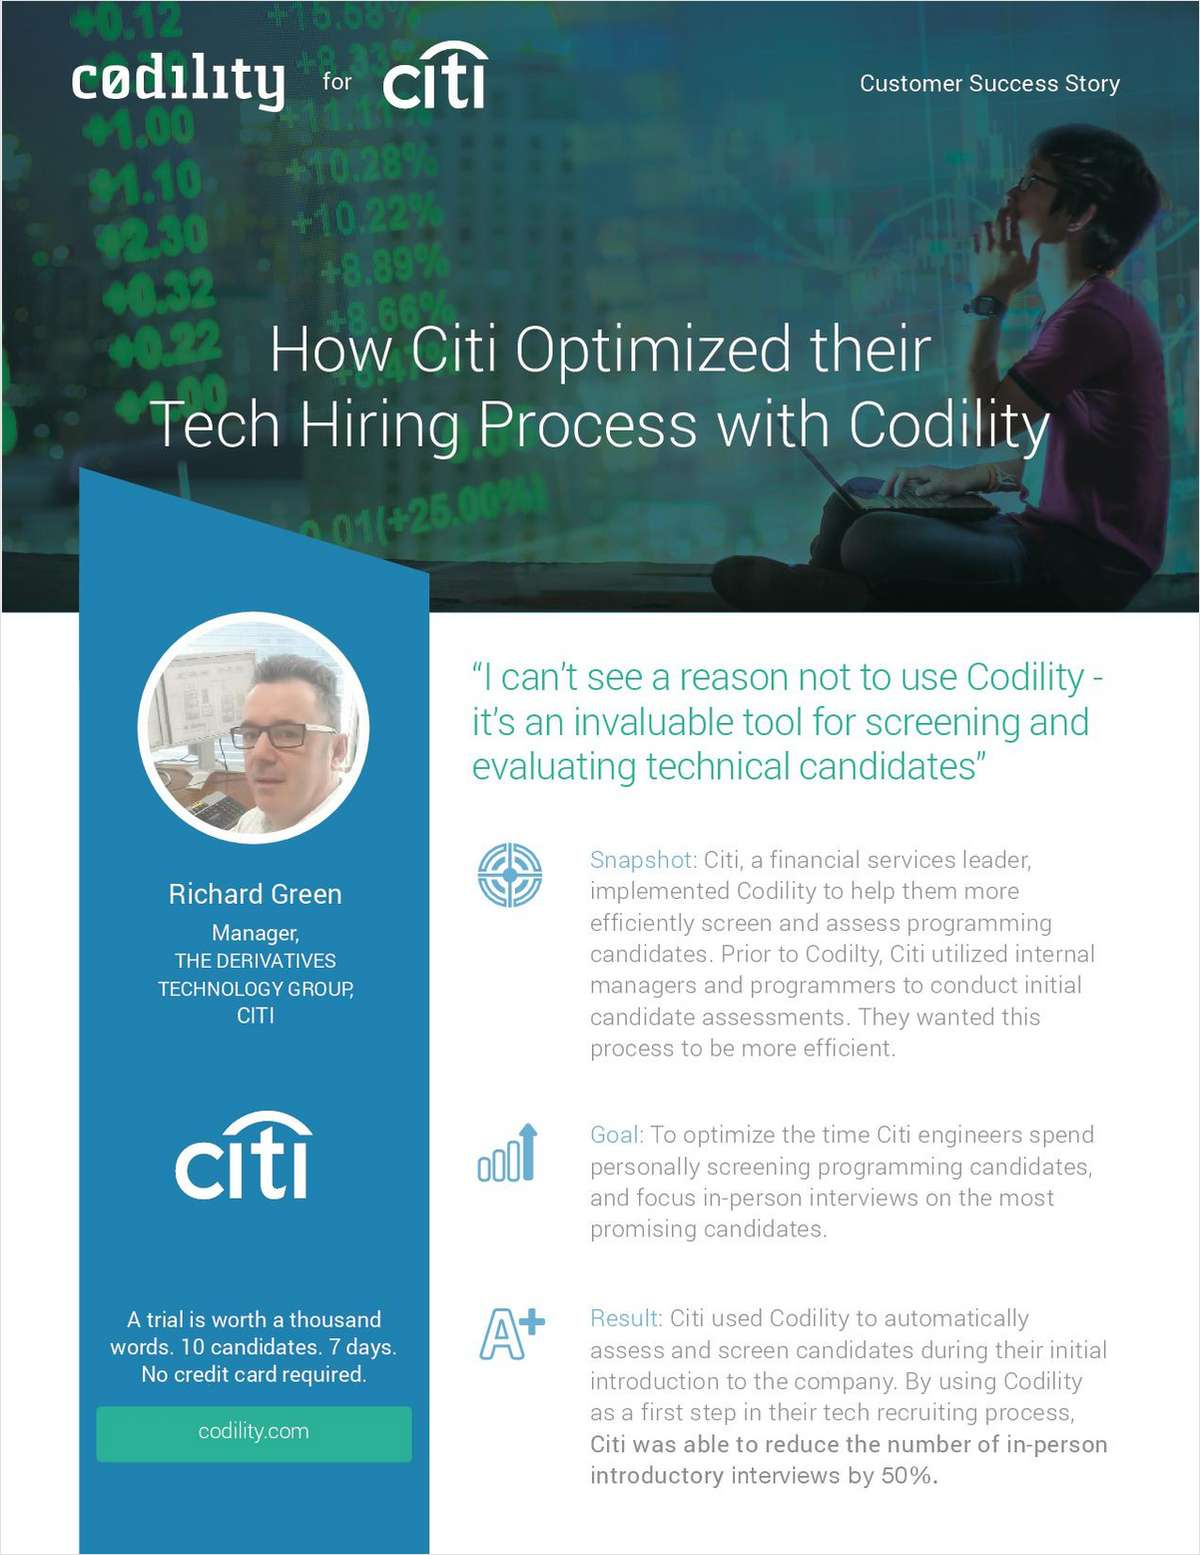 How Citi Optimized their Tech Hiring Process with Codility